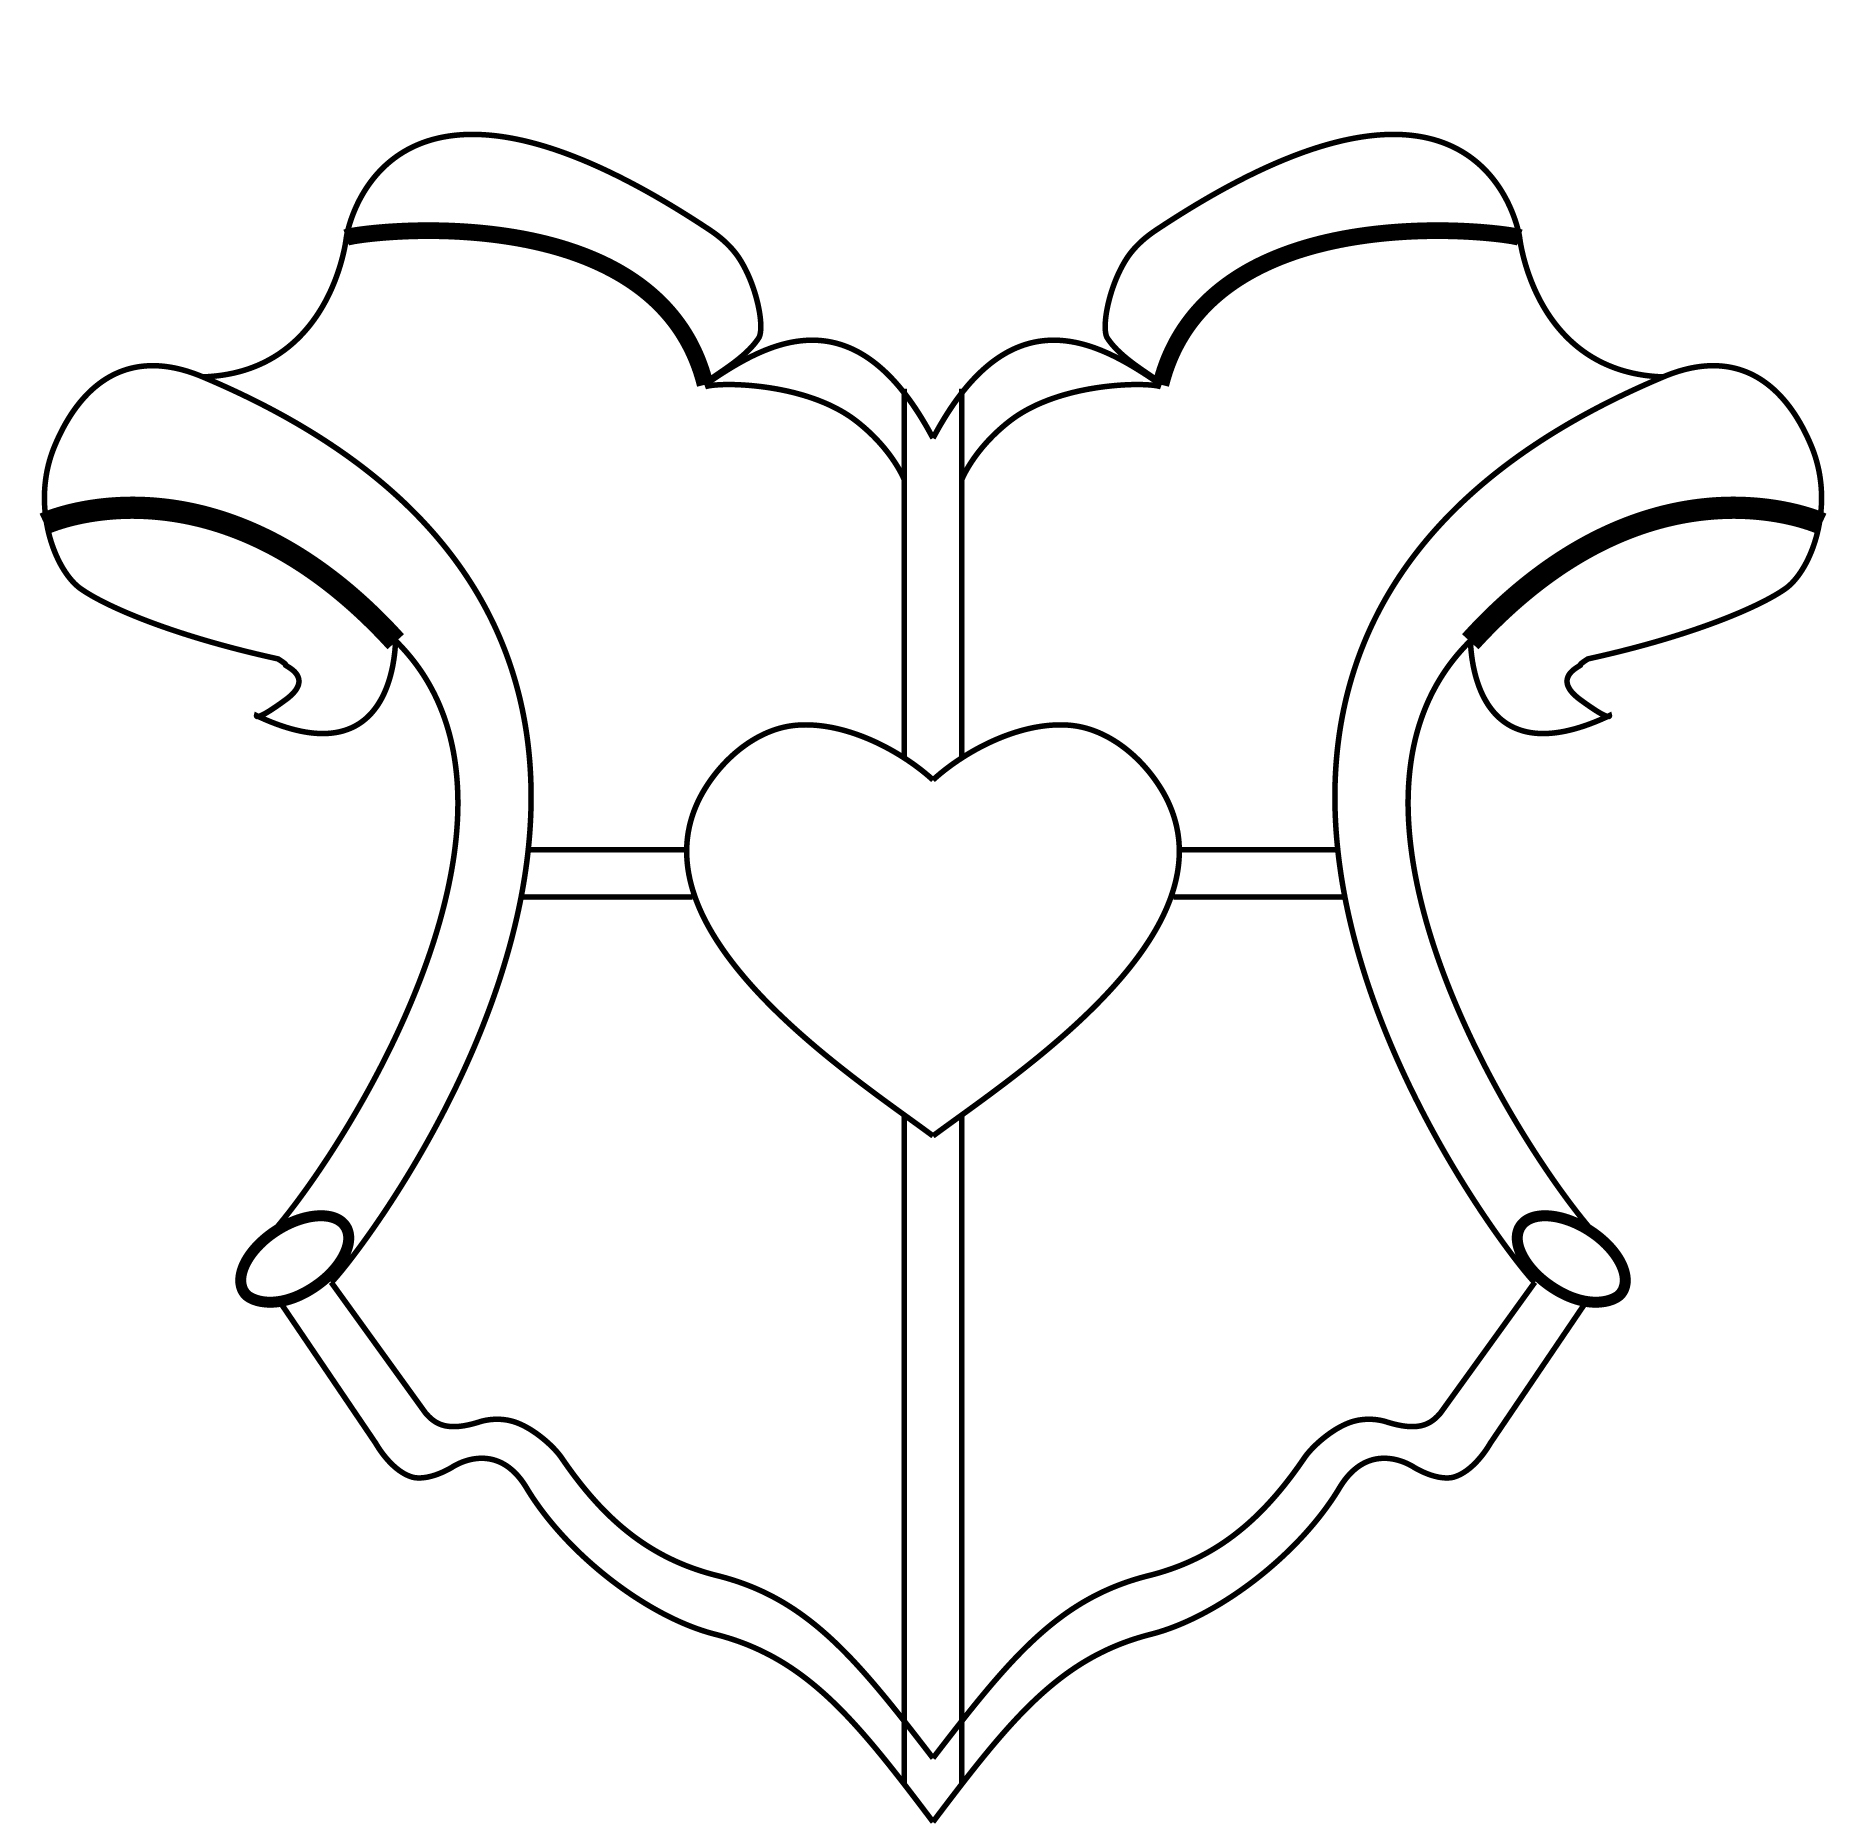 Coat of arms template by williamcll on DeviantArt – Coat of Arms Template